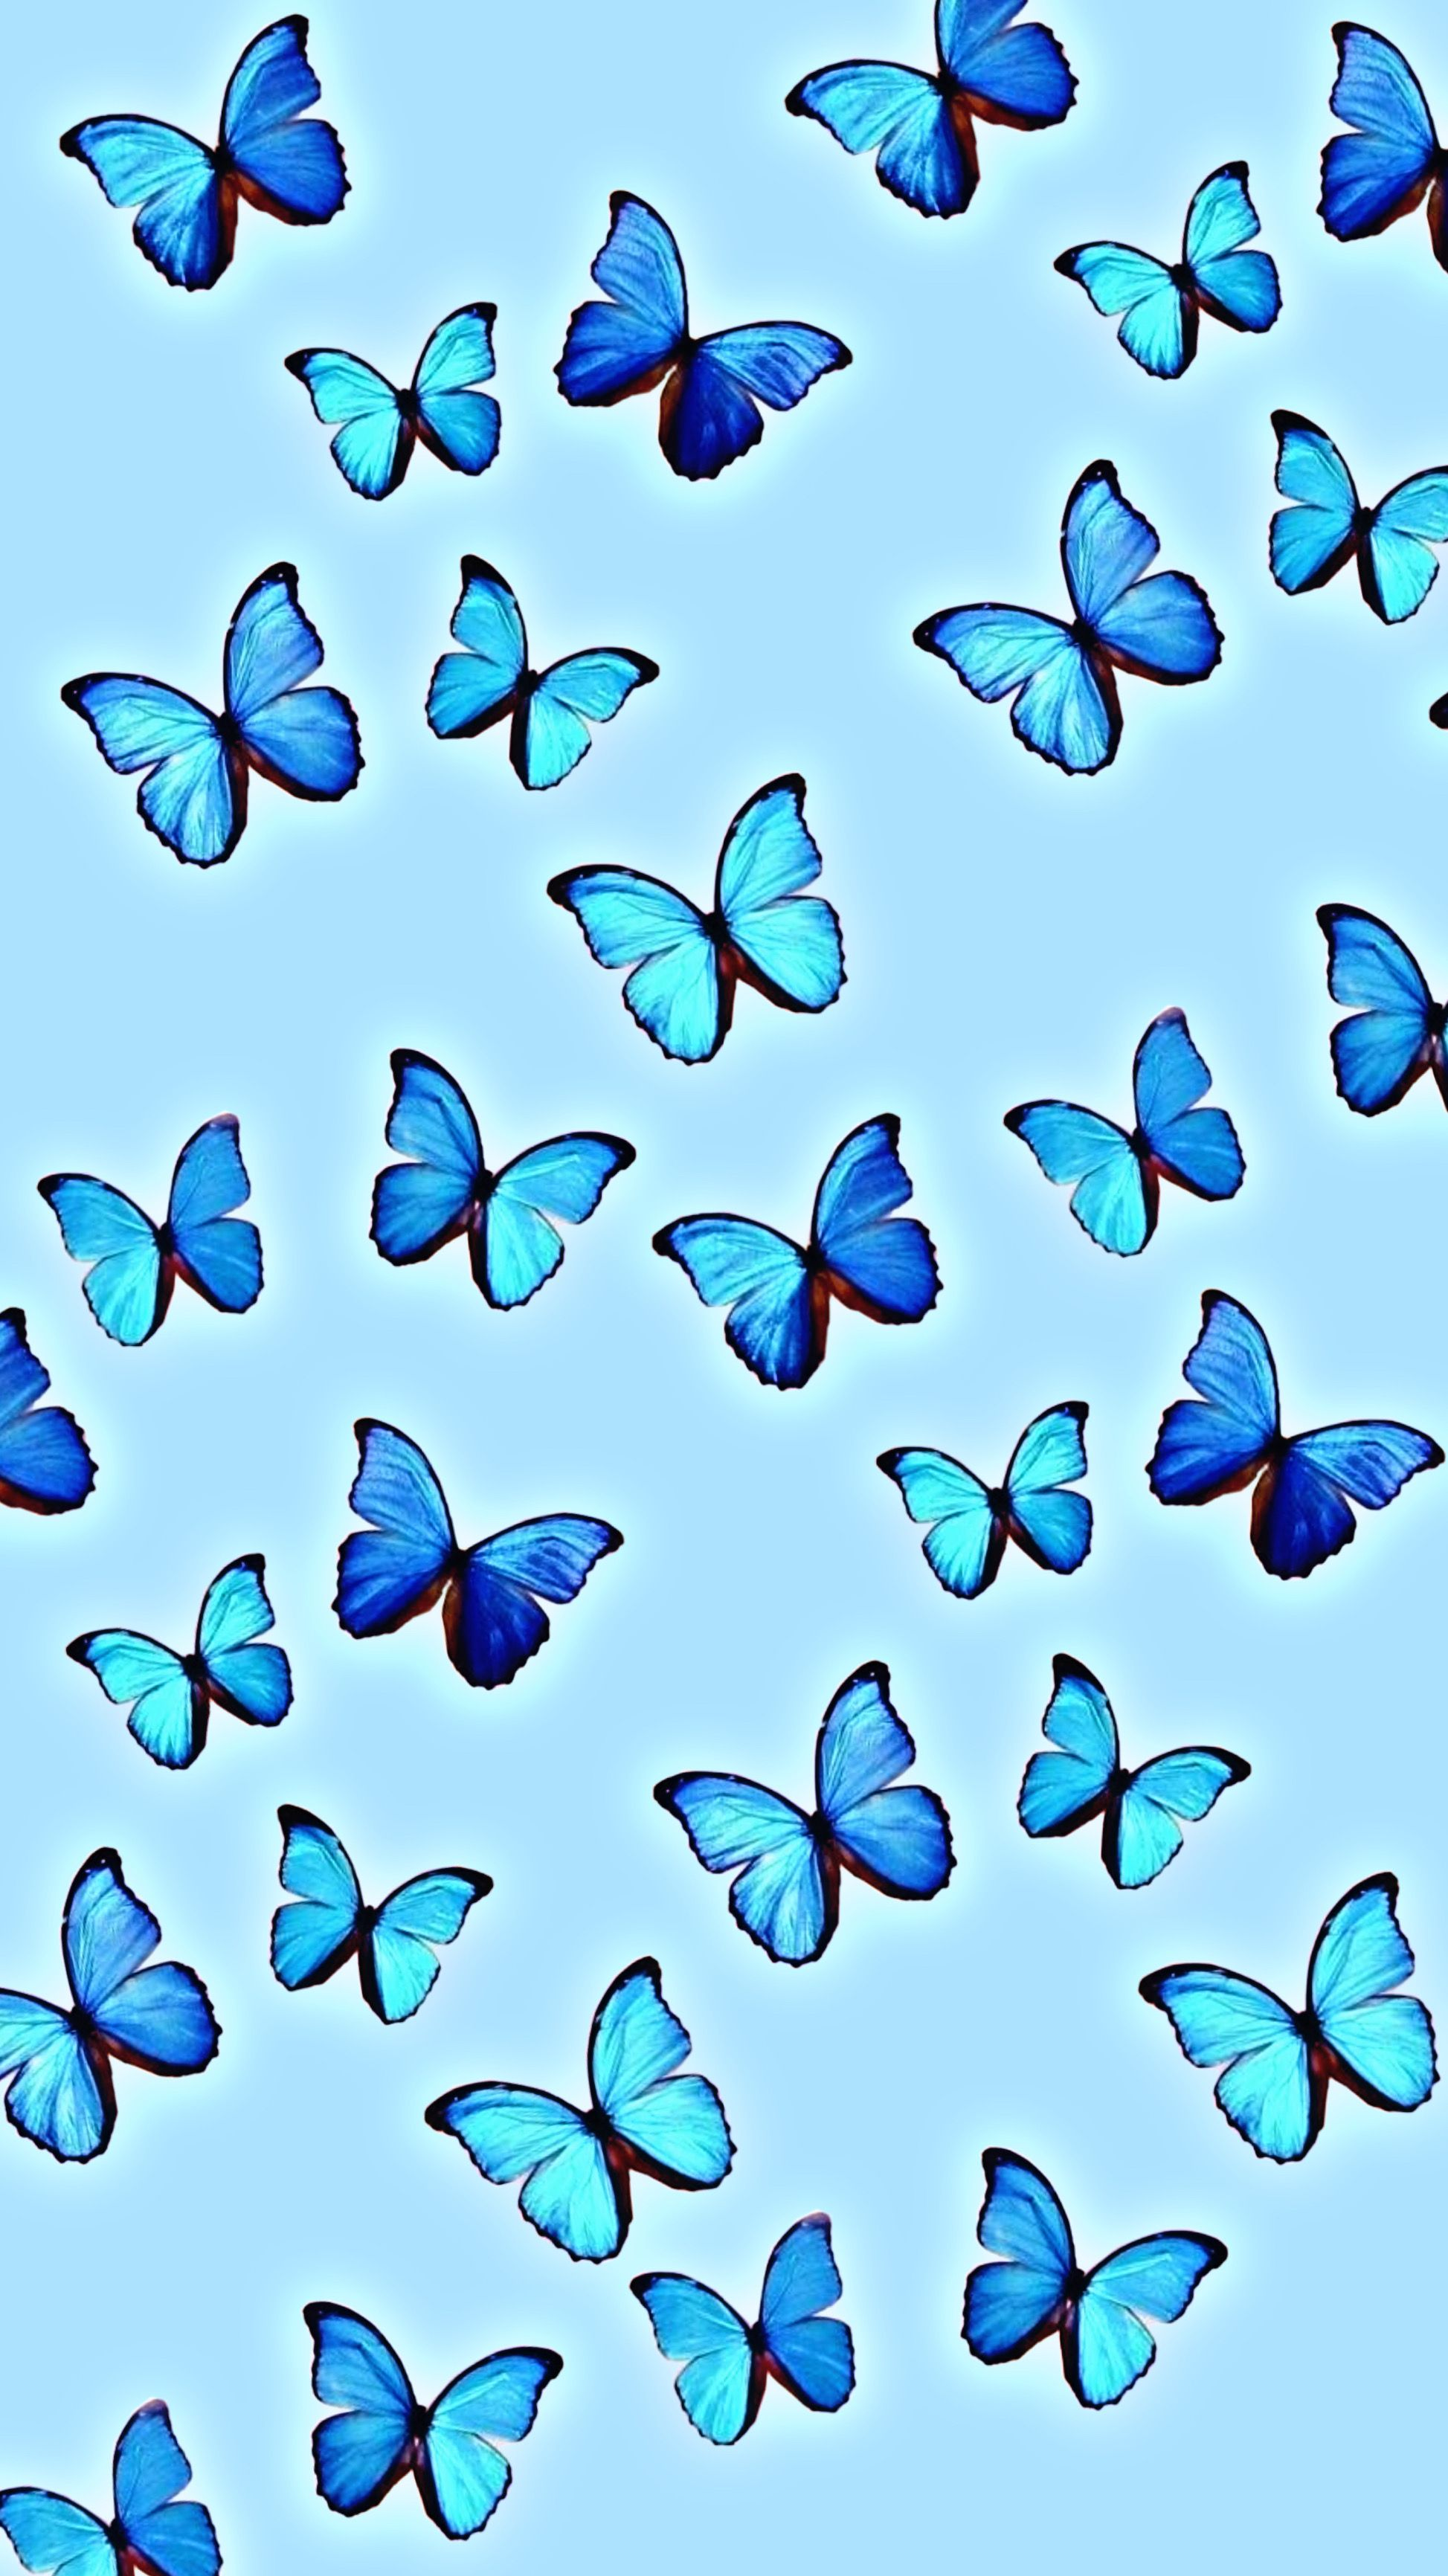 Pin By Xxanaxb On Aesthetic Iphone Wallpaper Blue Butterfly Wallpaper Butterfly Wallpaper Pretty Wallpaper Iphone